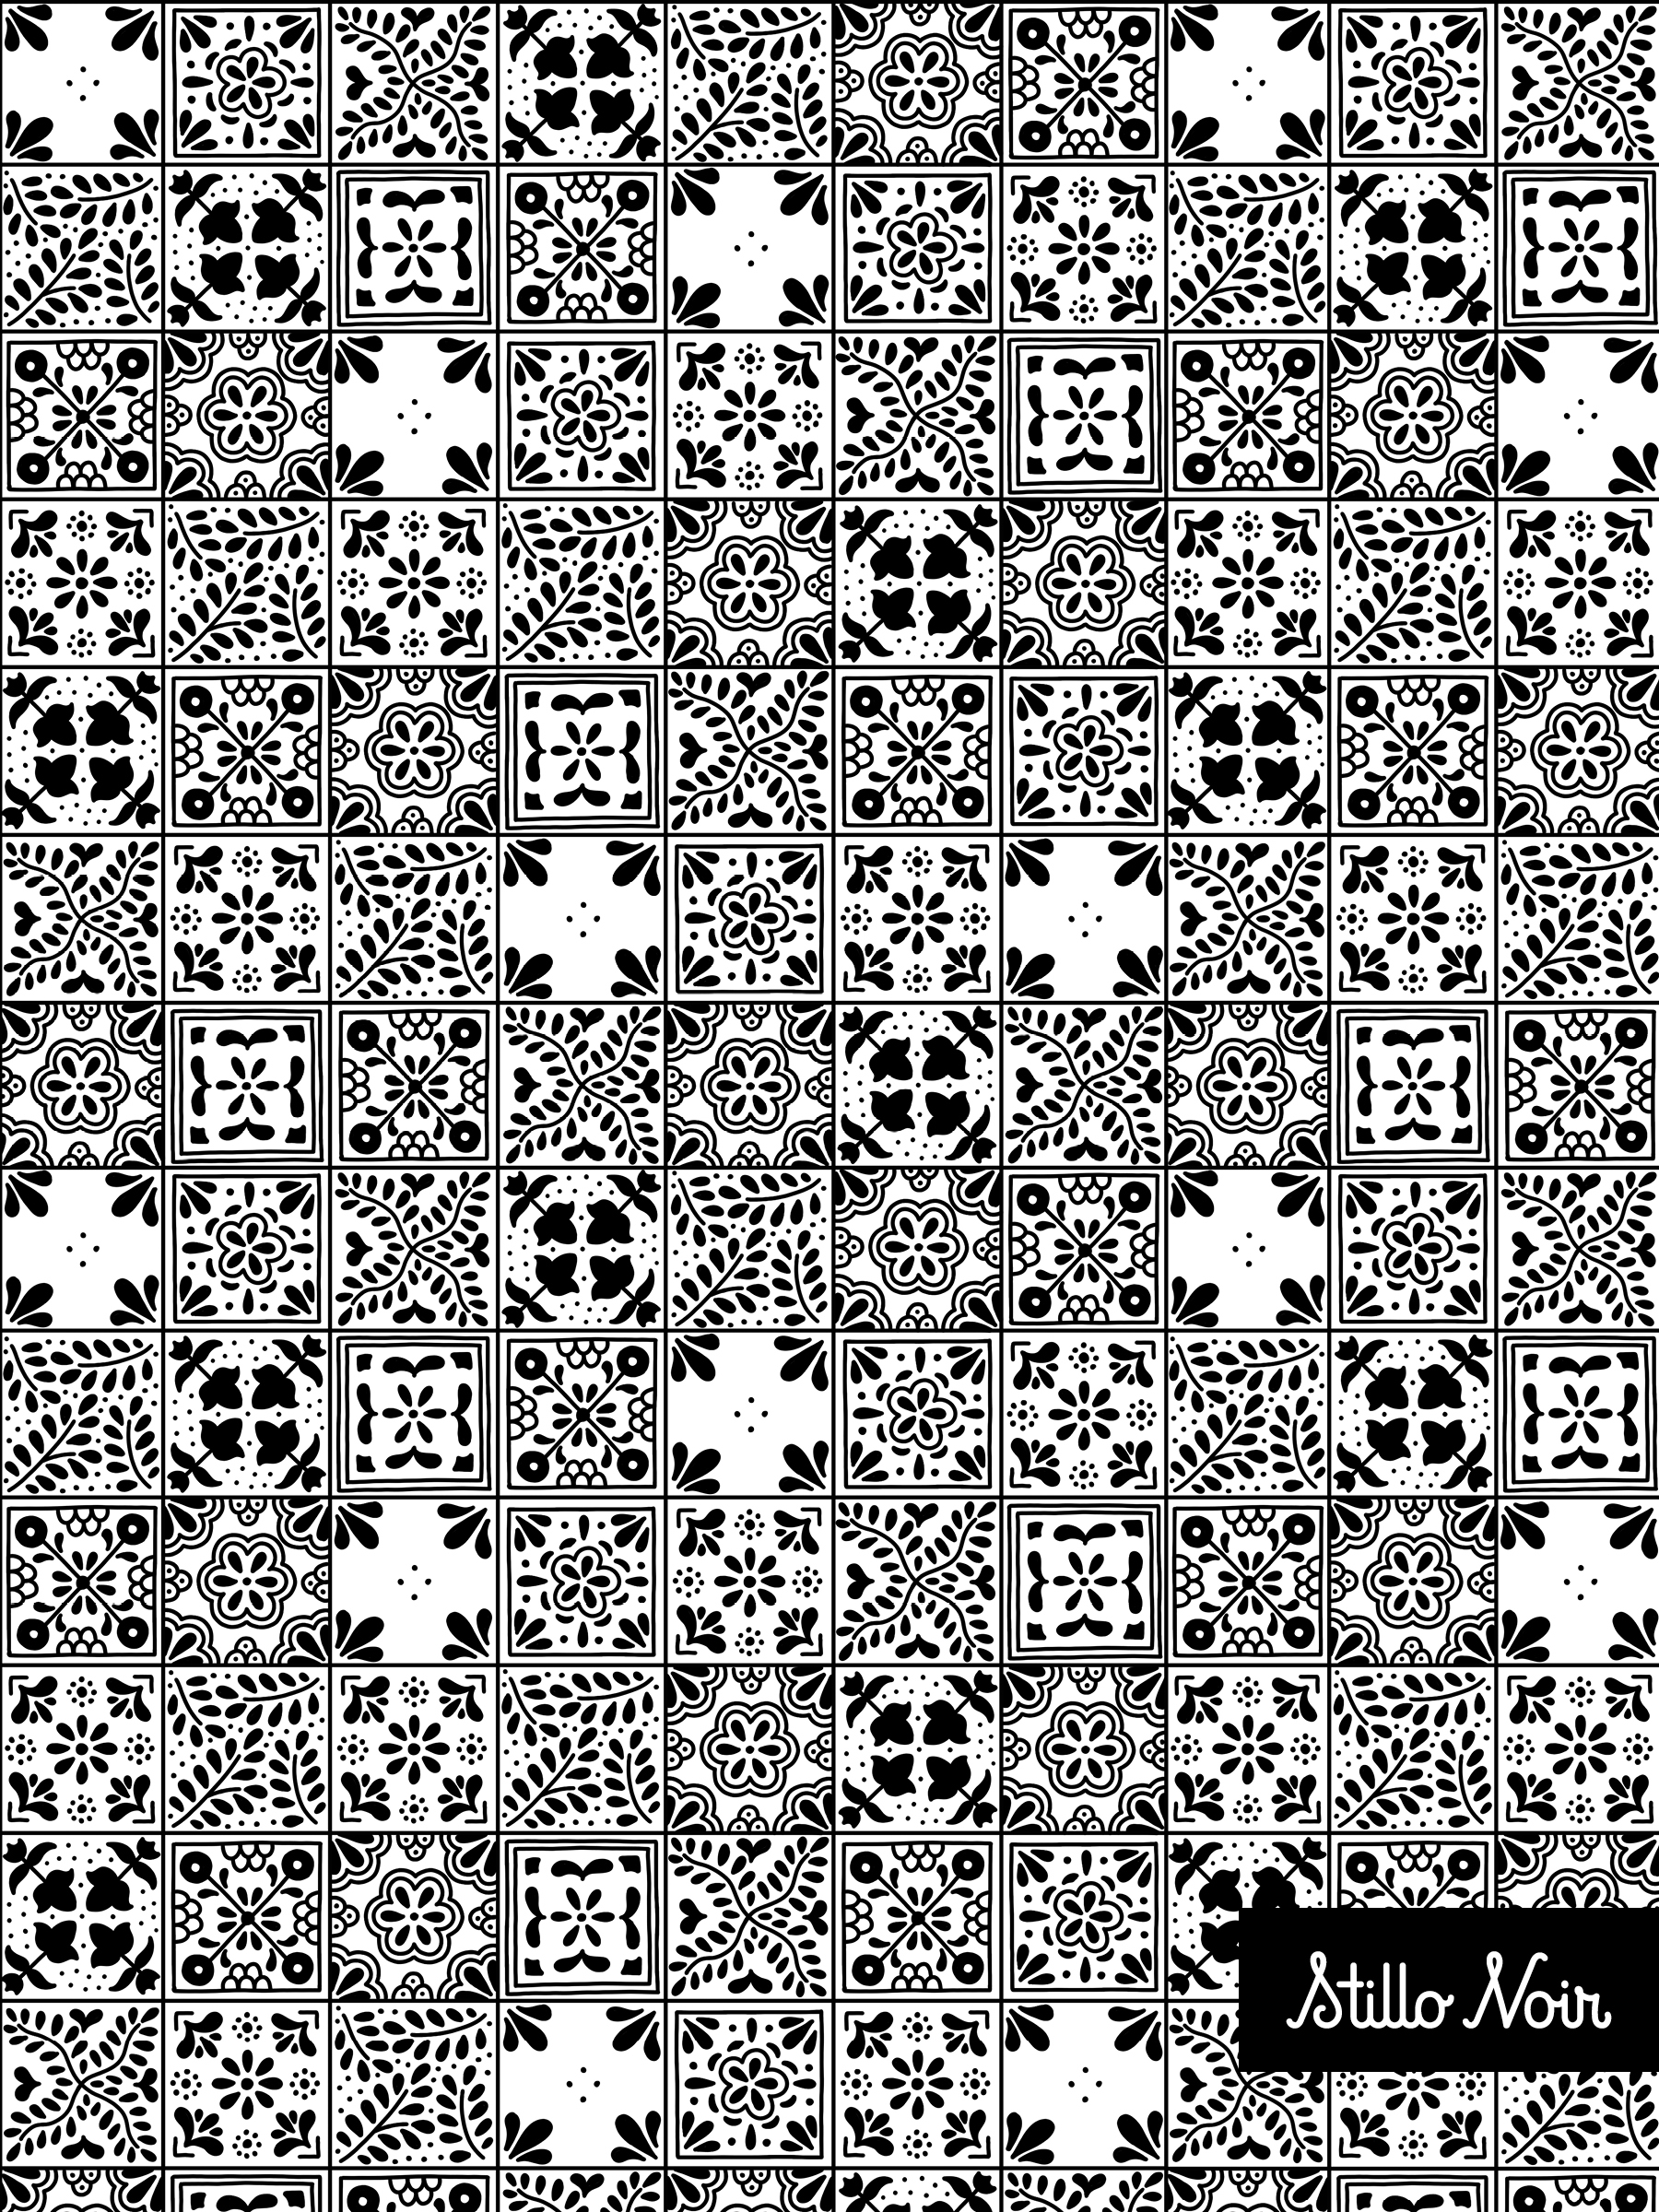 pattern_samples_vertical_210619.jpg